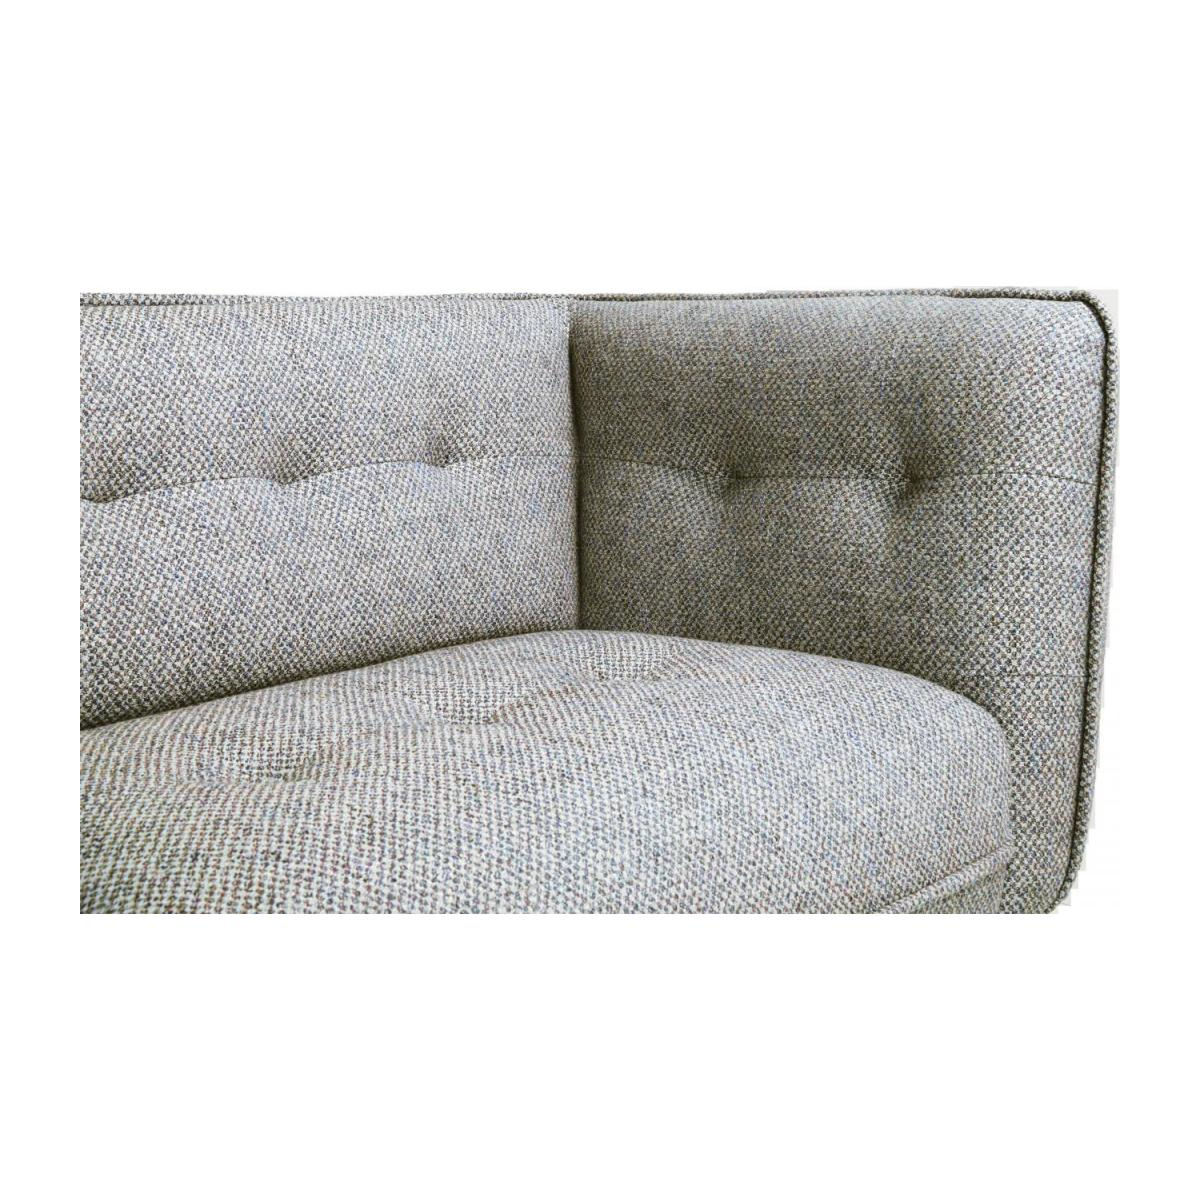 3 seater sofa in Bellagio fabric, organic green and dark legs n°7